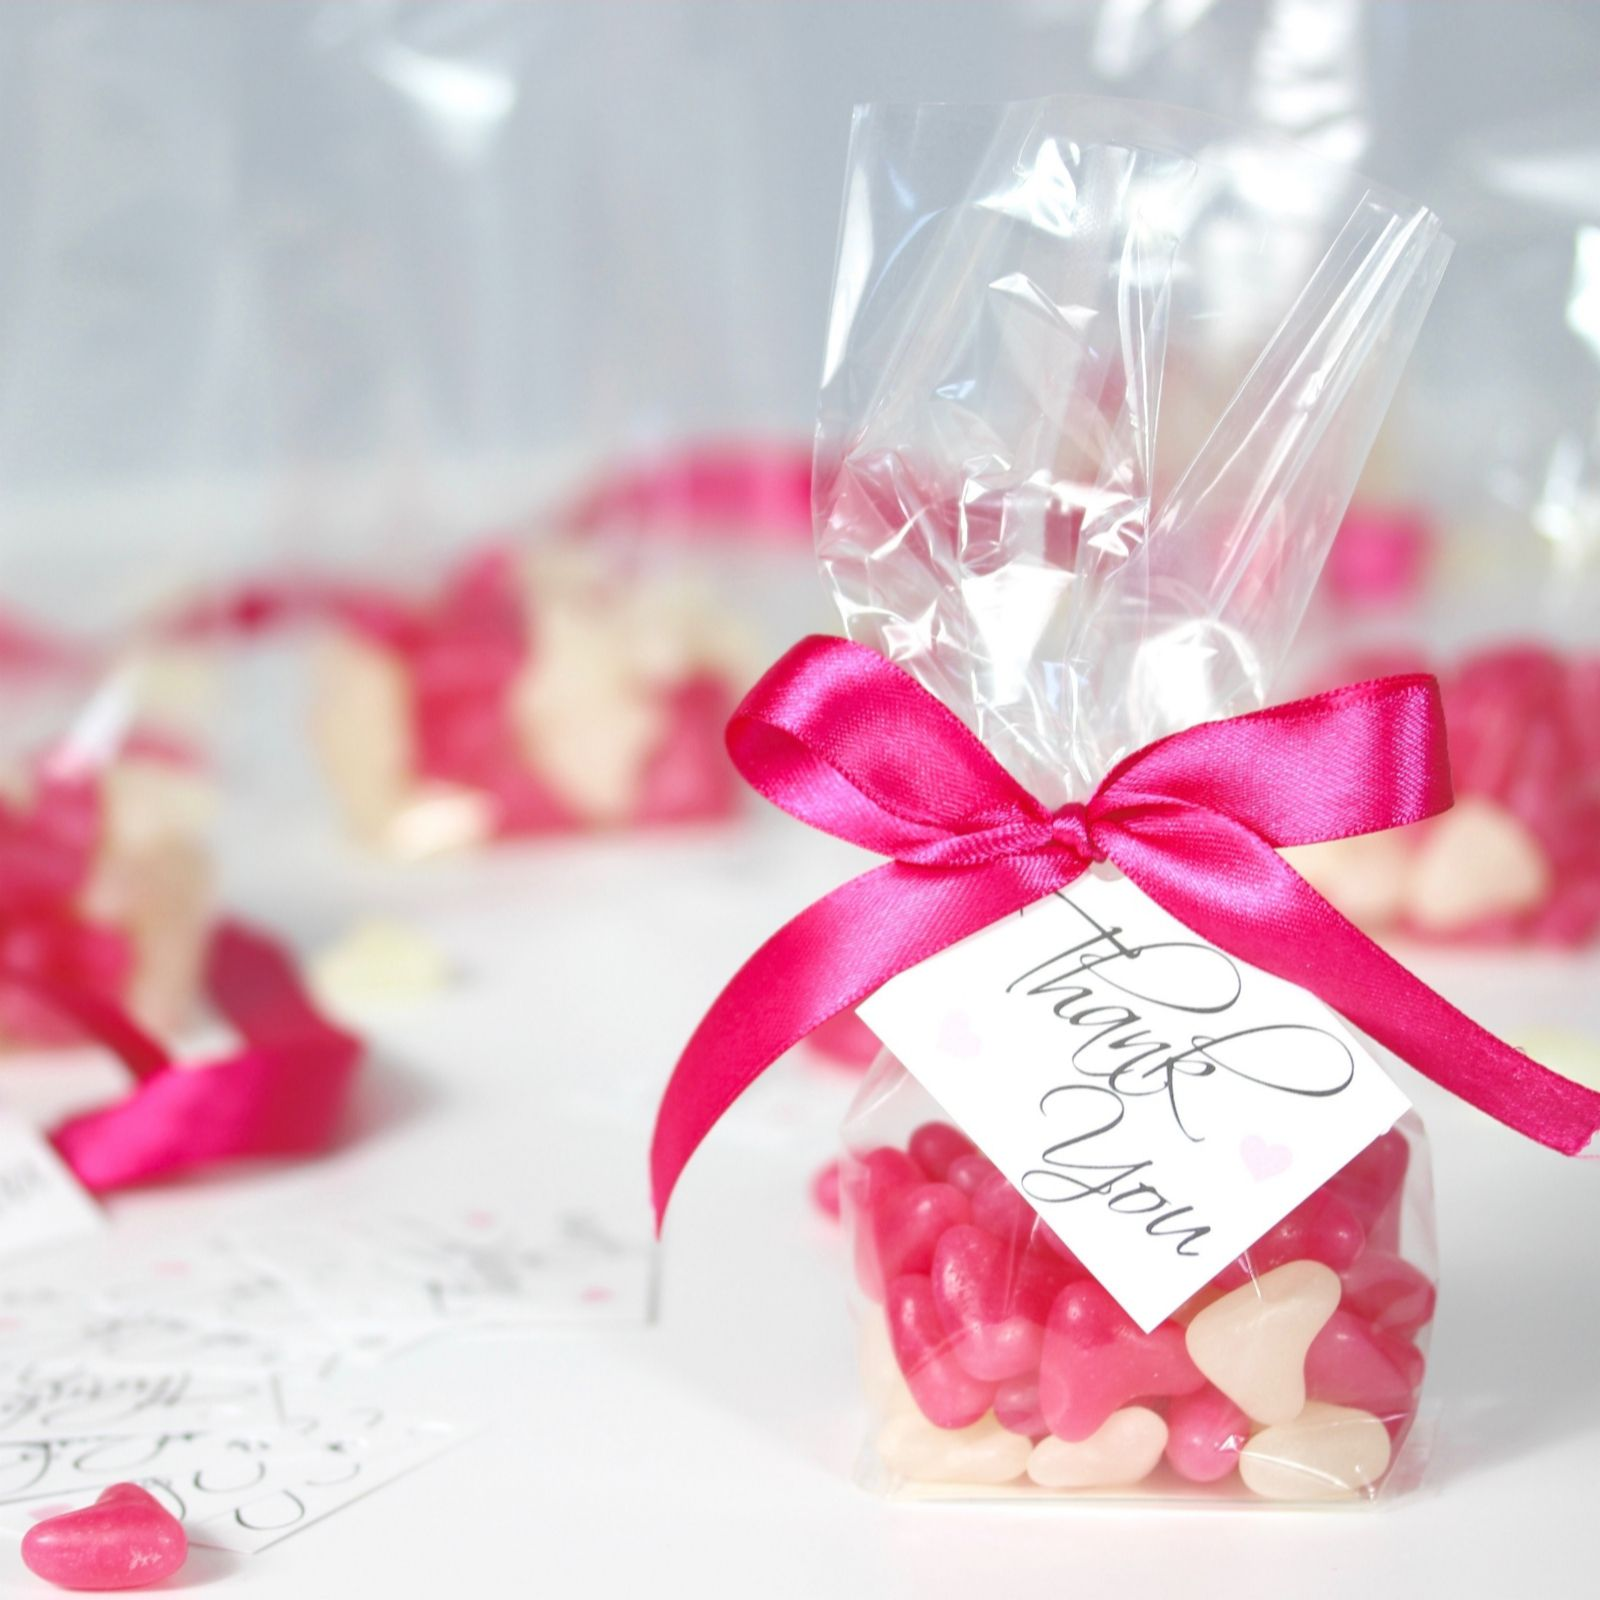 Calico Cottage Make Your Own Sweet Heart Wedding Favours - QVC UK